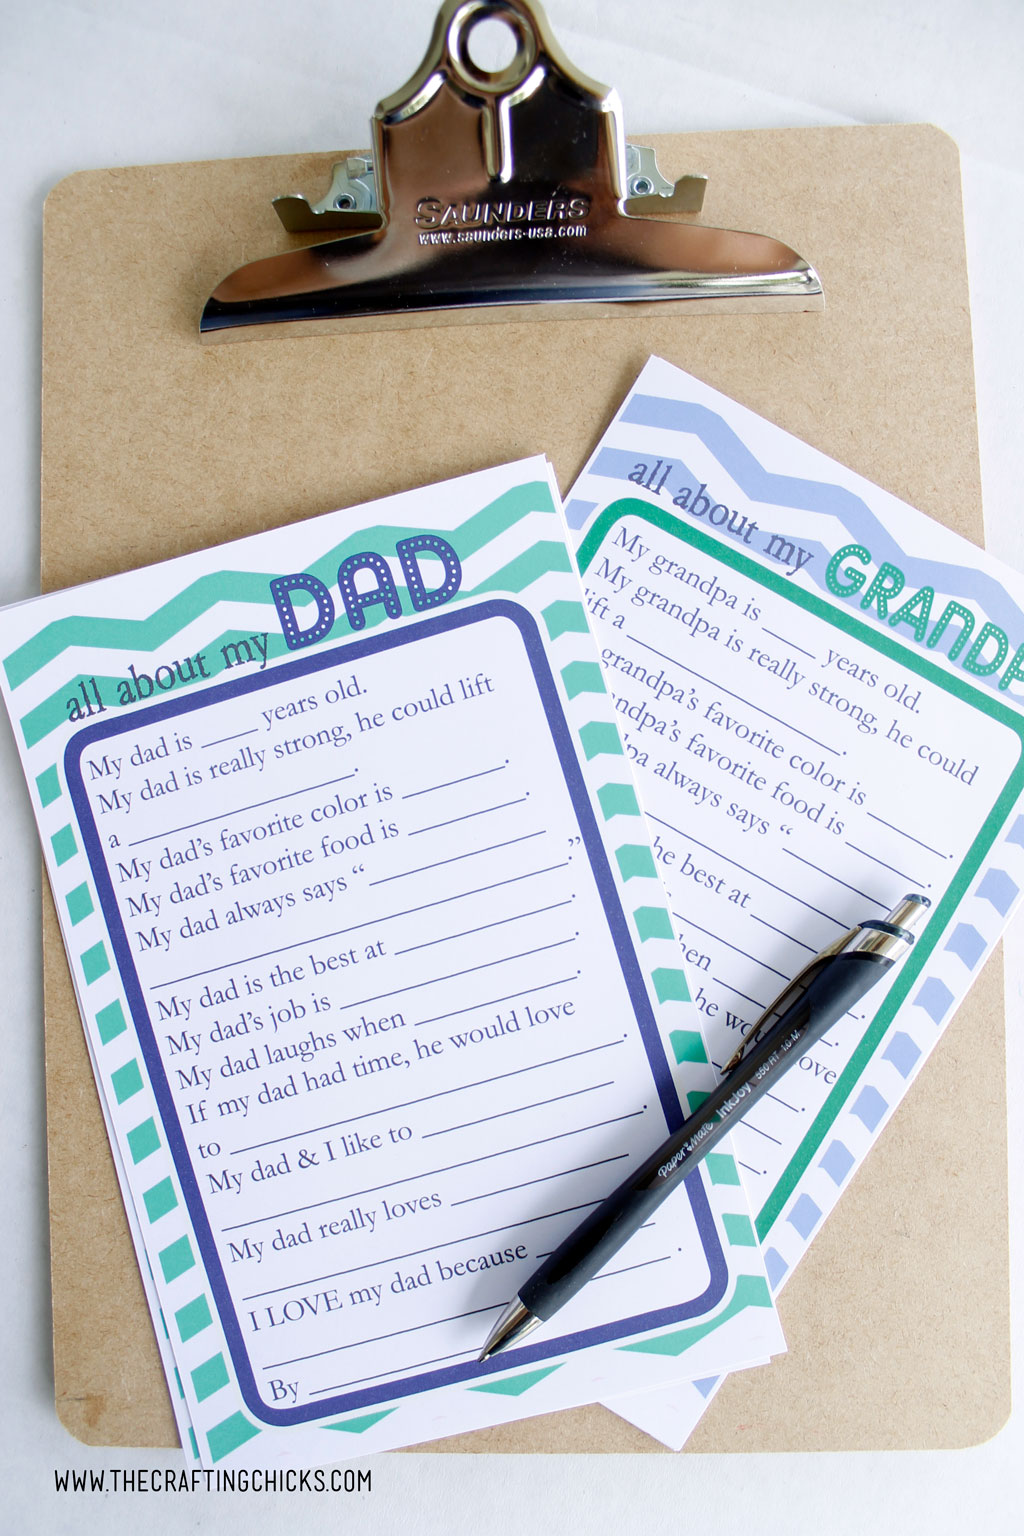 Dad and Grandpa Questionnaire for kids to fill out for Father's Day. Free Printable on clipboard with pen.